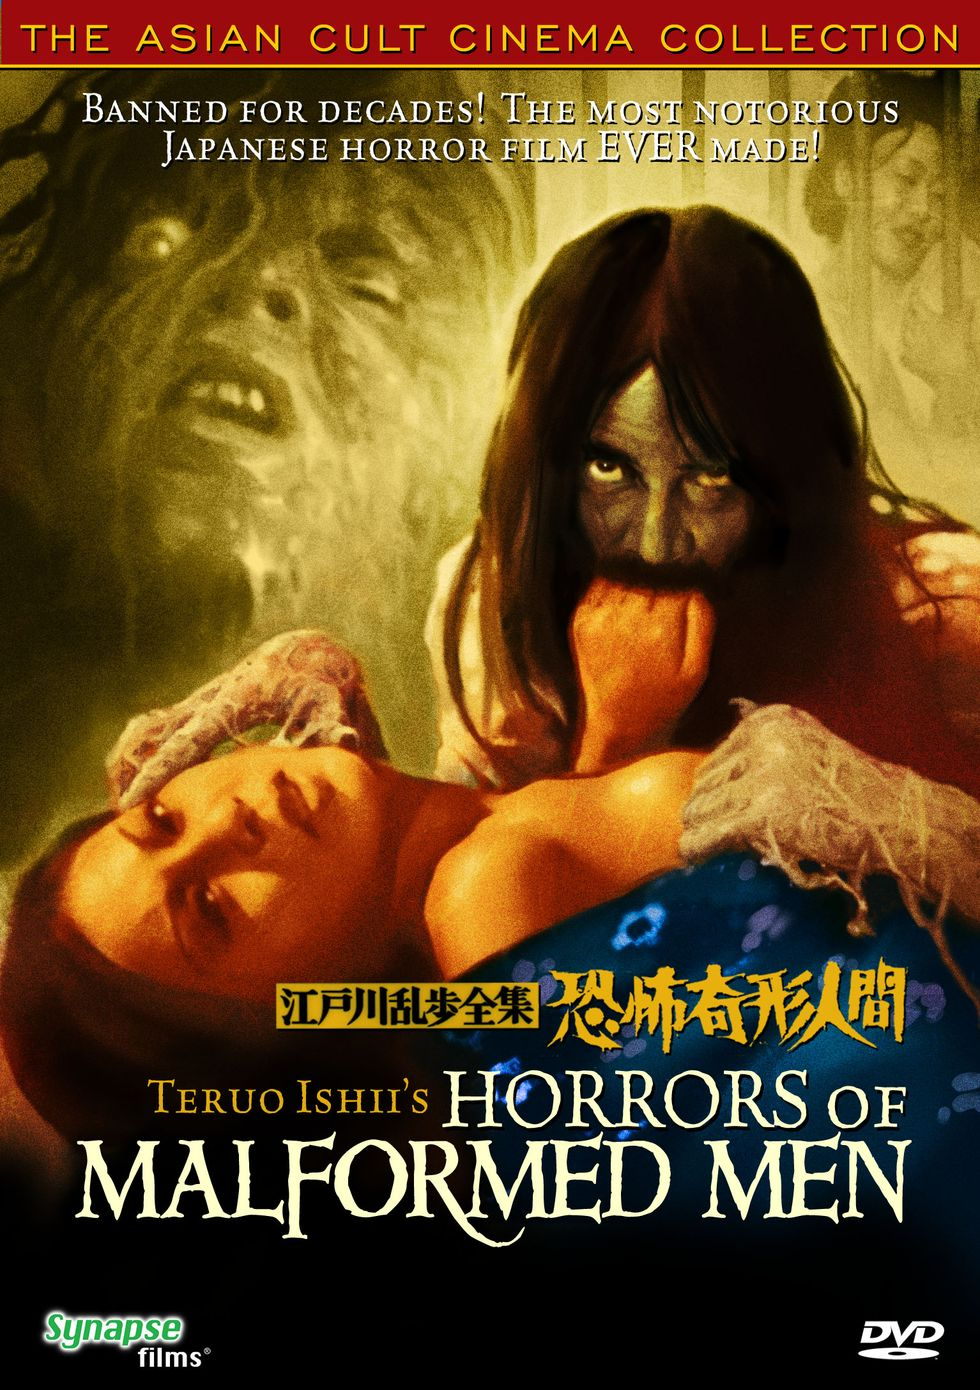 Horrors of Malformed Men DVD!